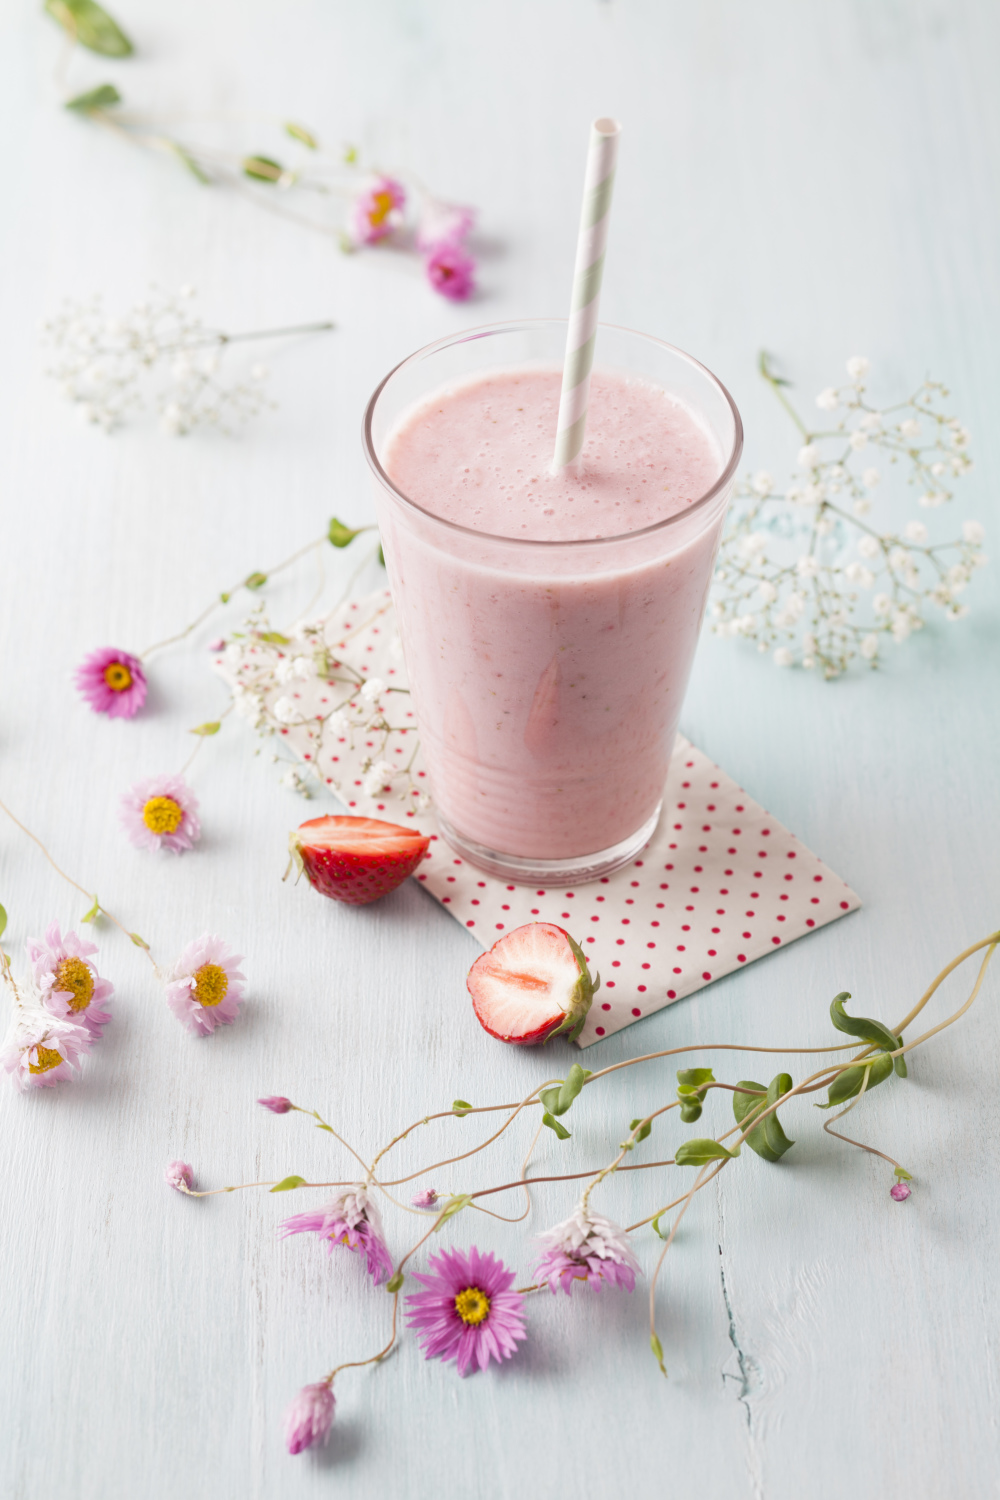 Glass of strawberry smoothie with cornflower blossom